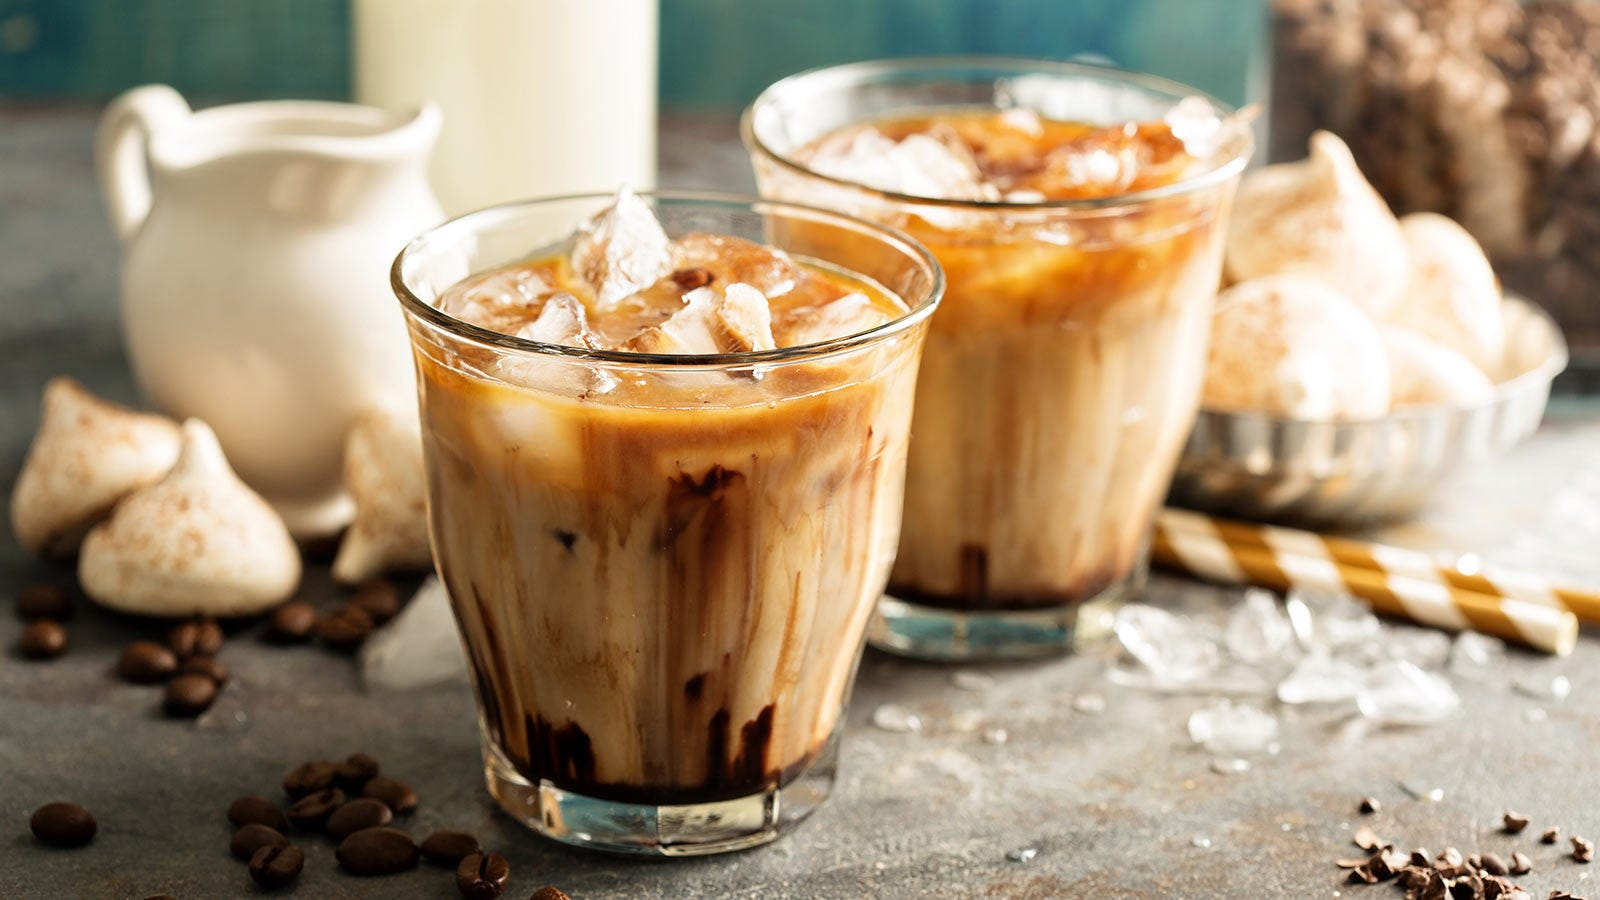 A creamy iced coffee cocktail on a table with the ingredients and meringue cookies.